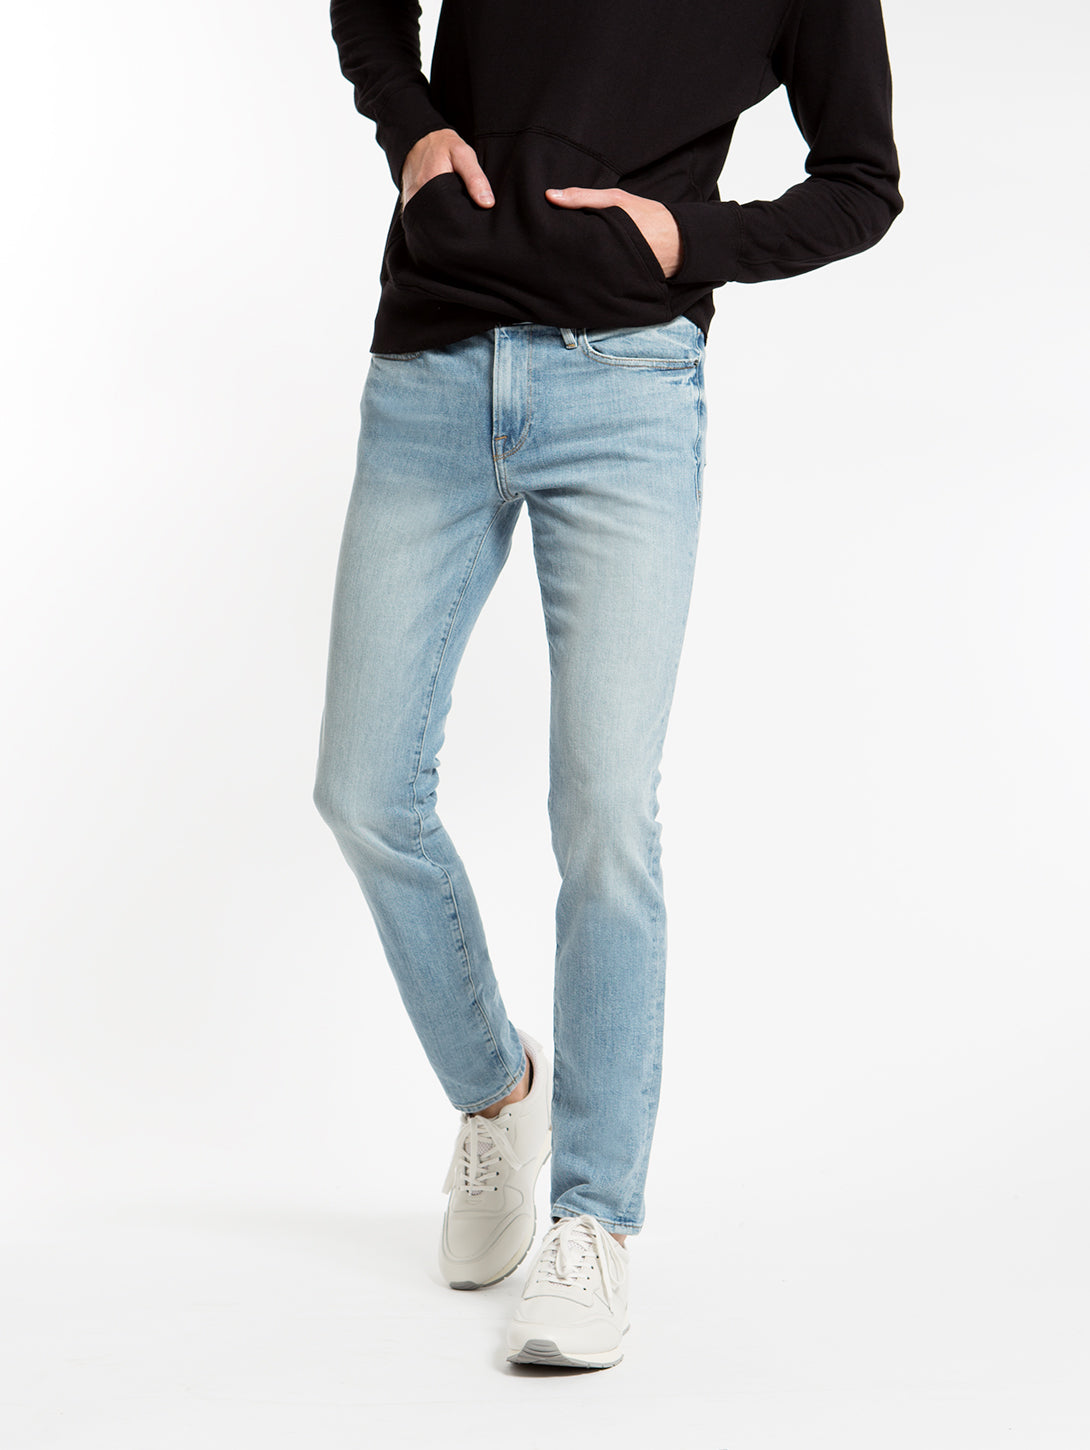 L'Homme Skinny Jean - Midpines-FRAME-Over the Rainbow